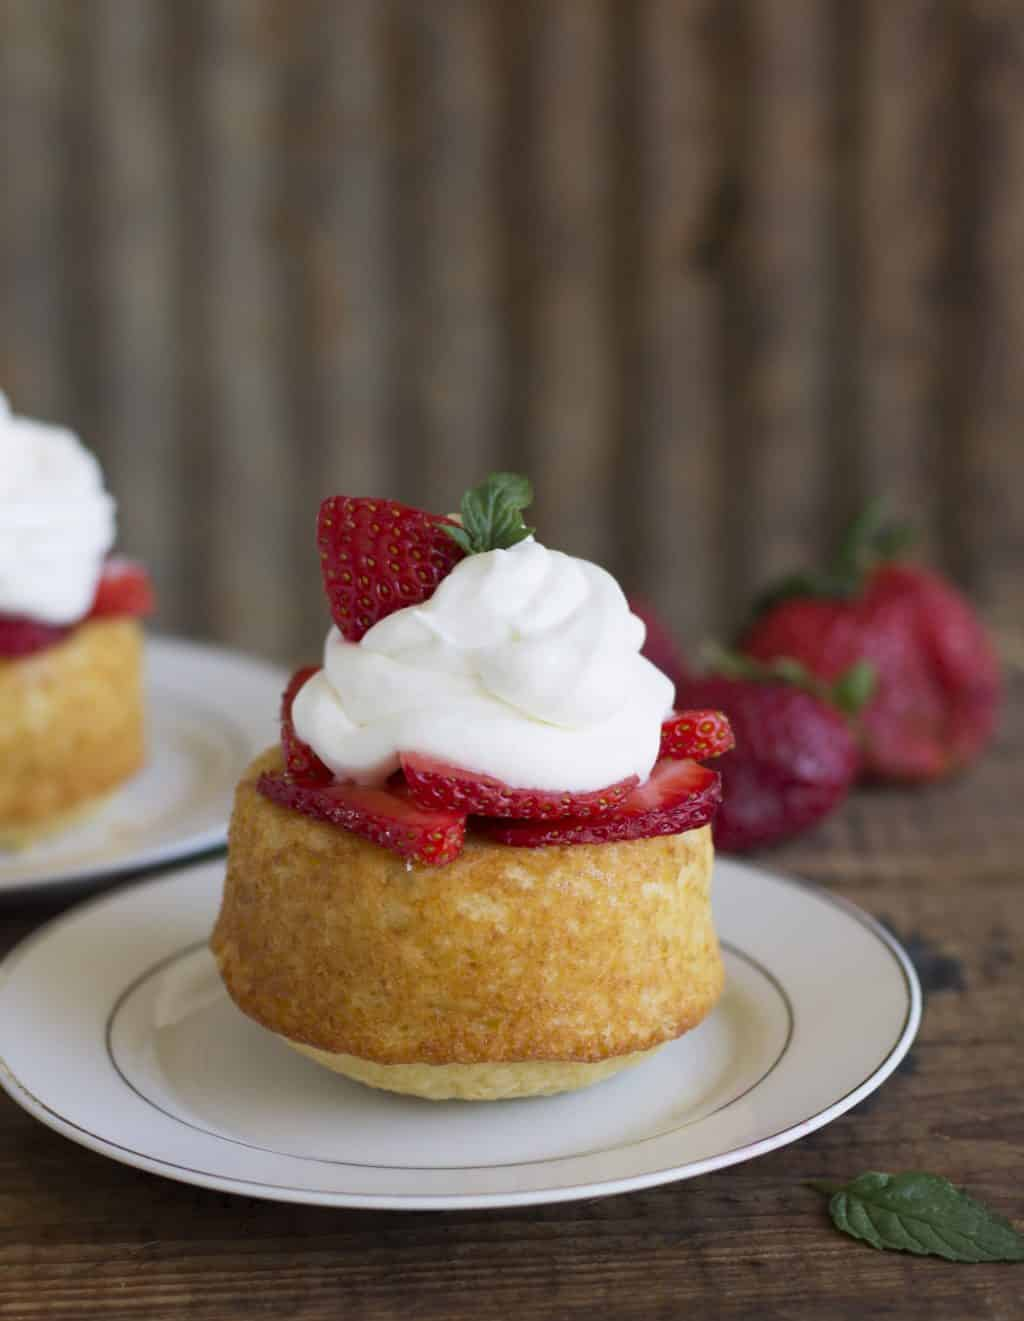 Homemade Strawberry Shortcake Feast And Farm